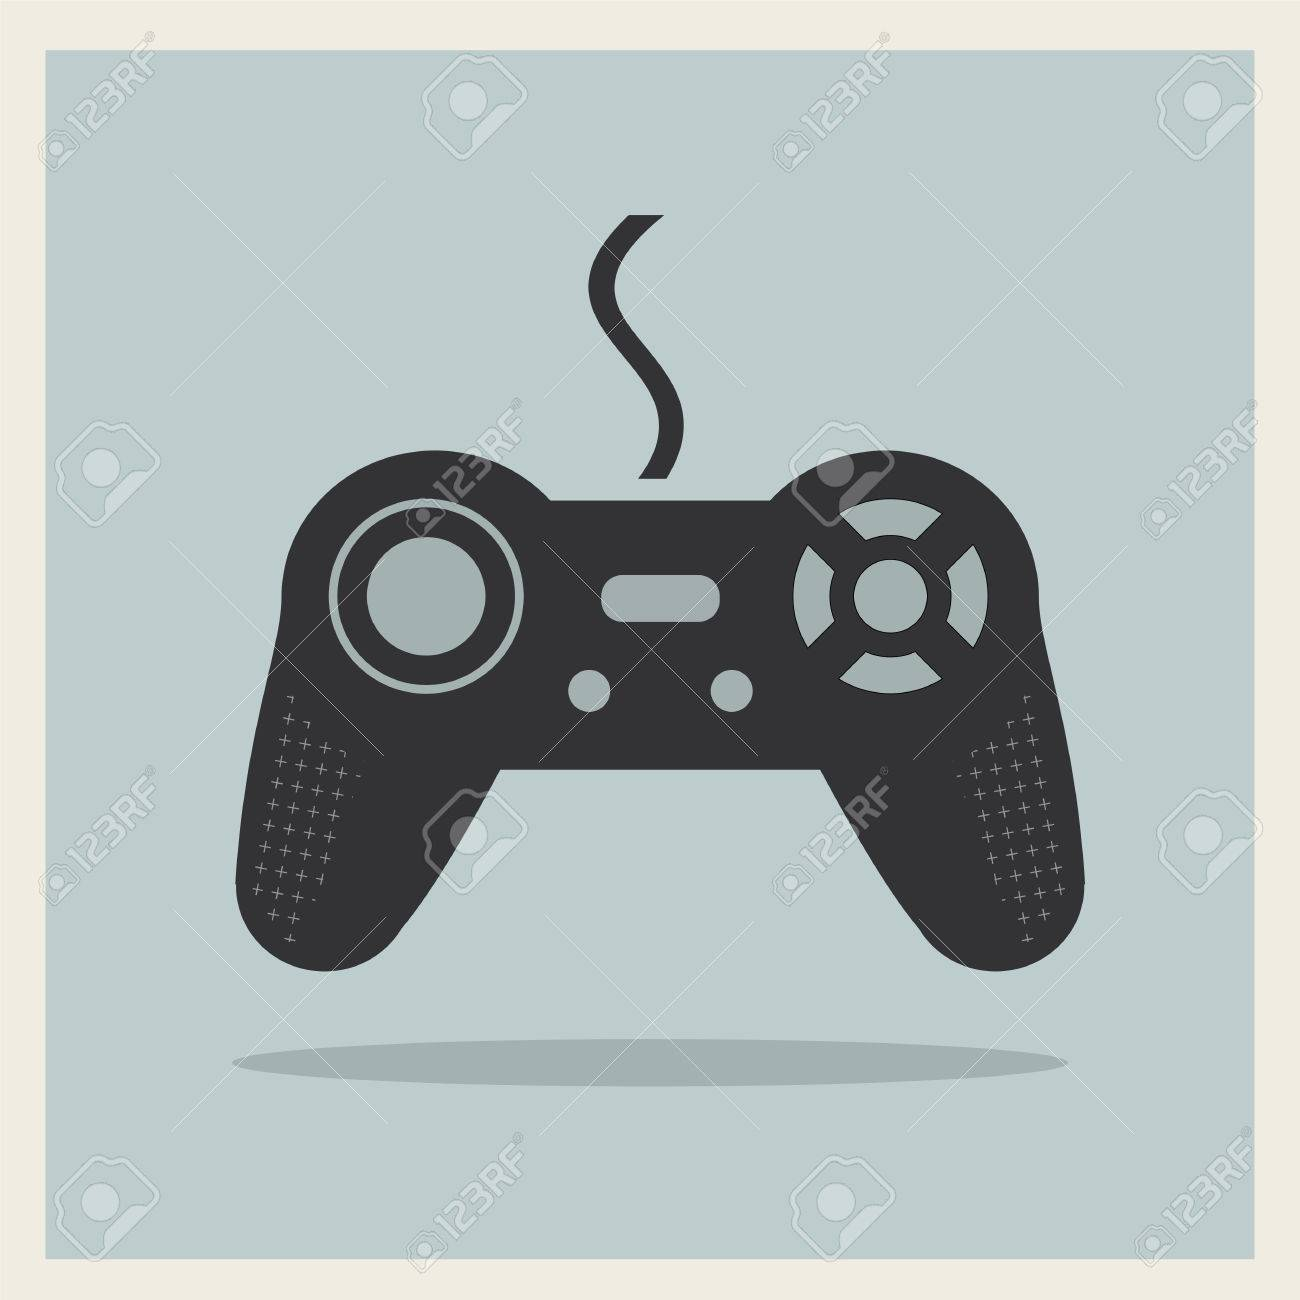 Computer Video Game Controller Joystick on Retro Background Stock Vector - 26844349